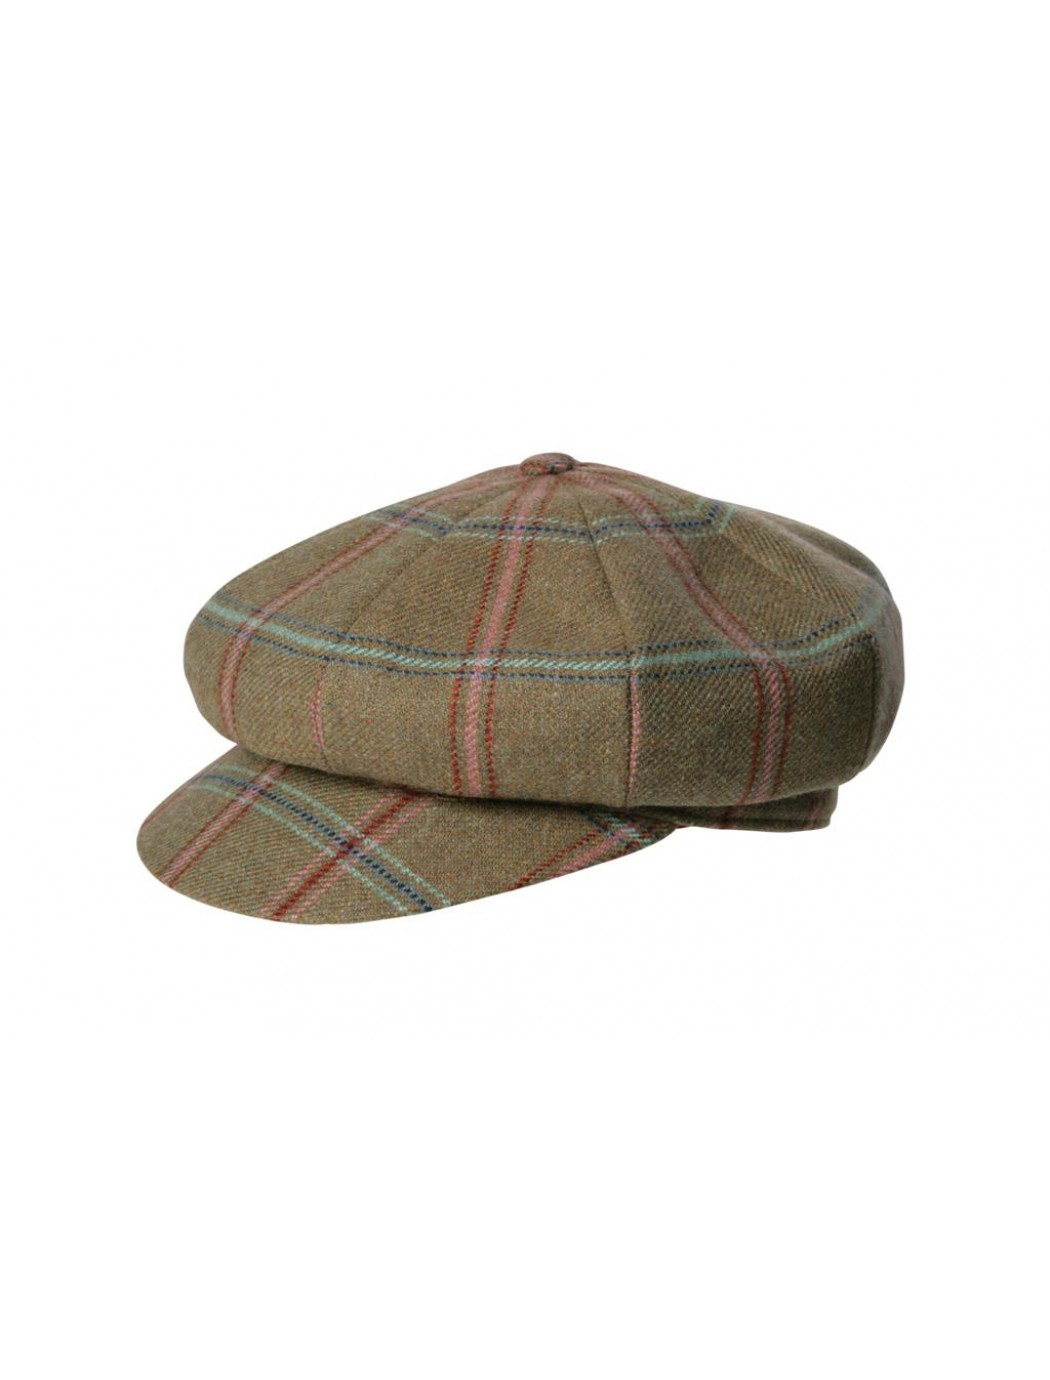 moore-tweed-cap-connacht-meadow-dubarry-1